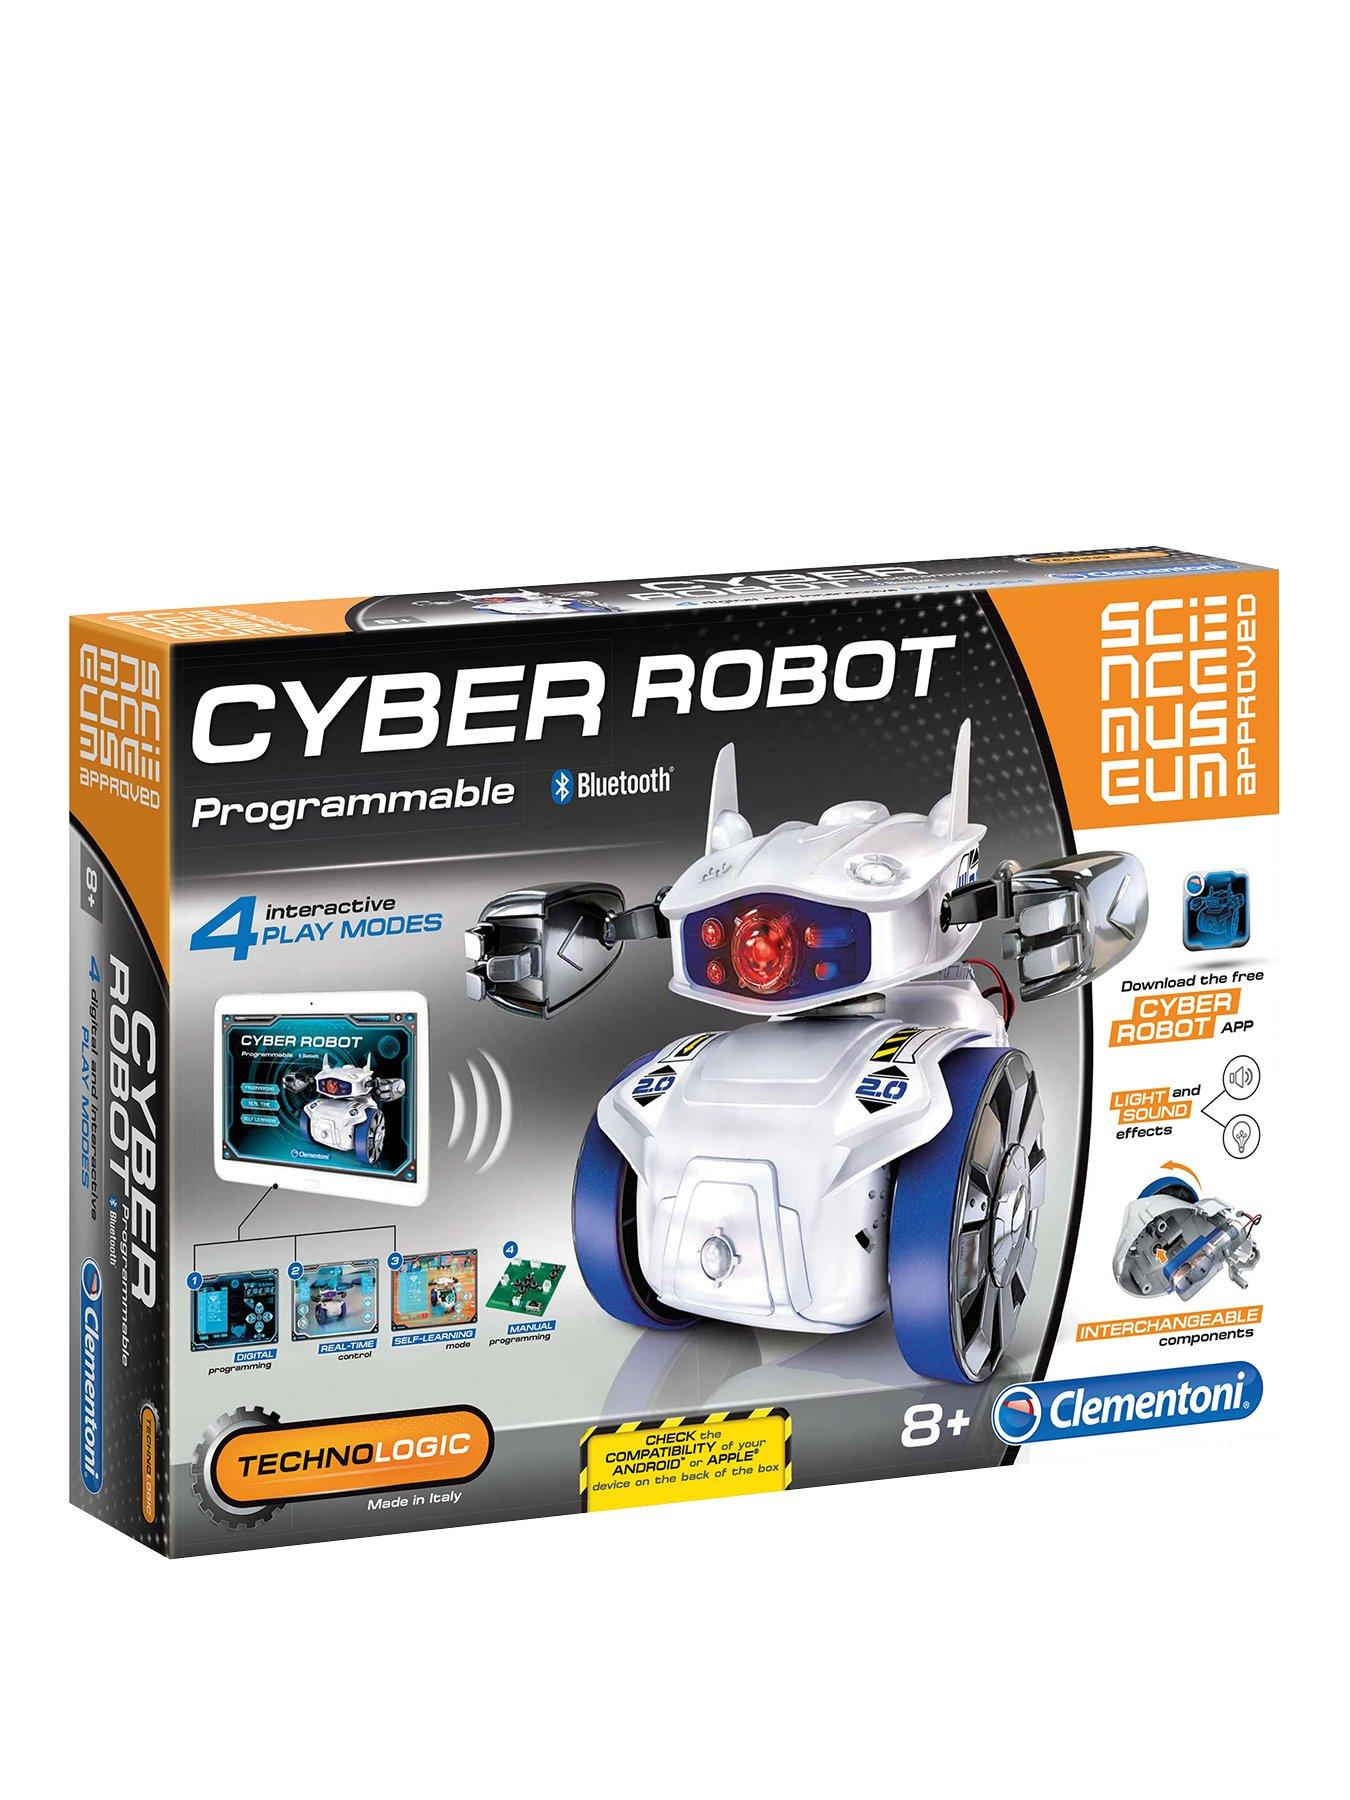 Compare prices for Clementoni Science Museum Cyber Robot